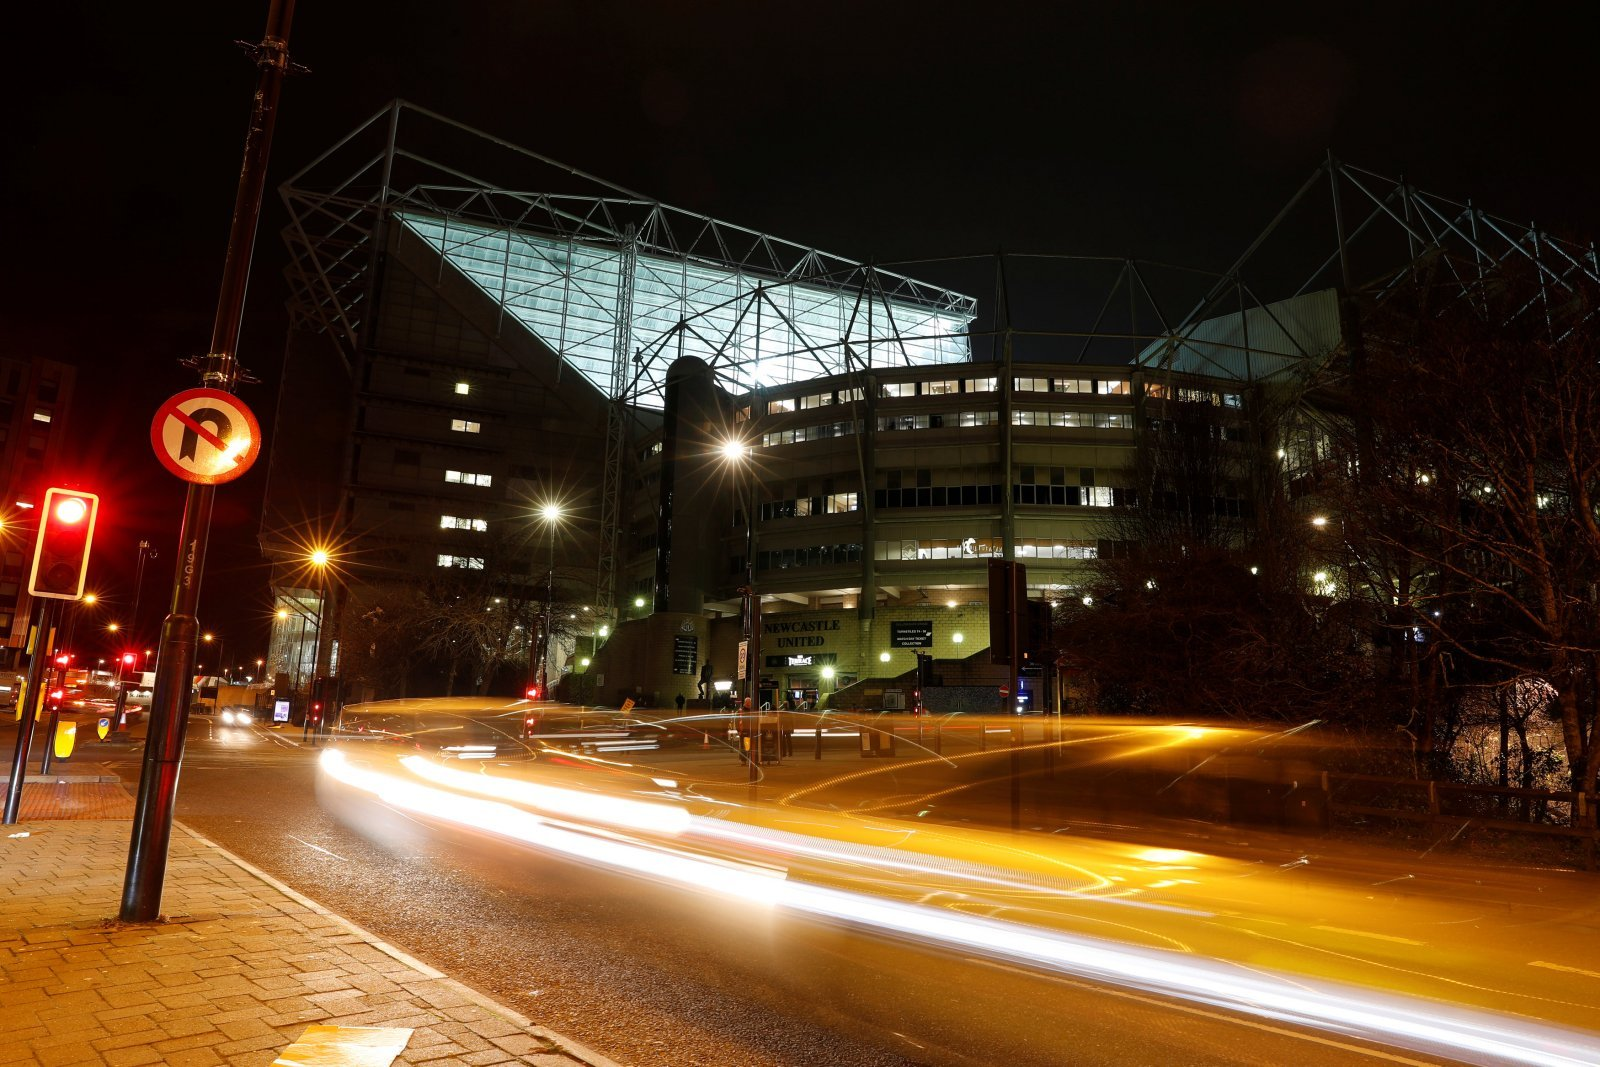 Newcastle United: Ousting Ashley would be the smart choice for UK billionaire